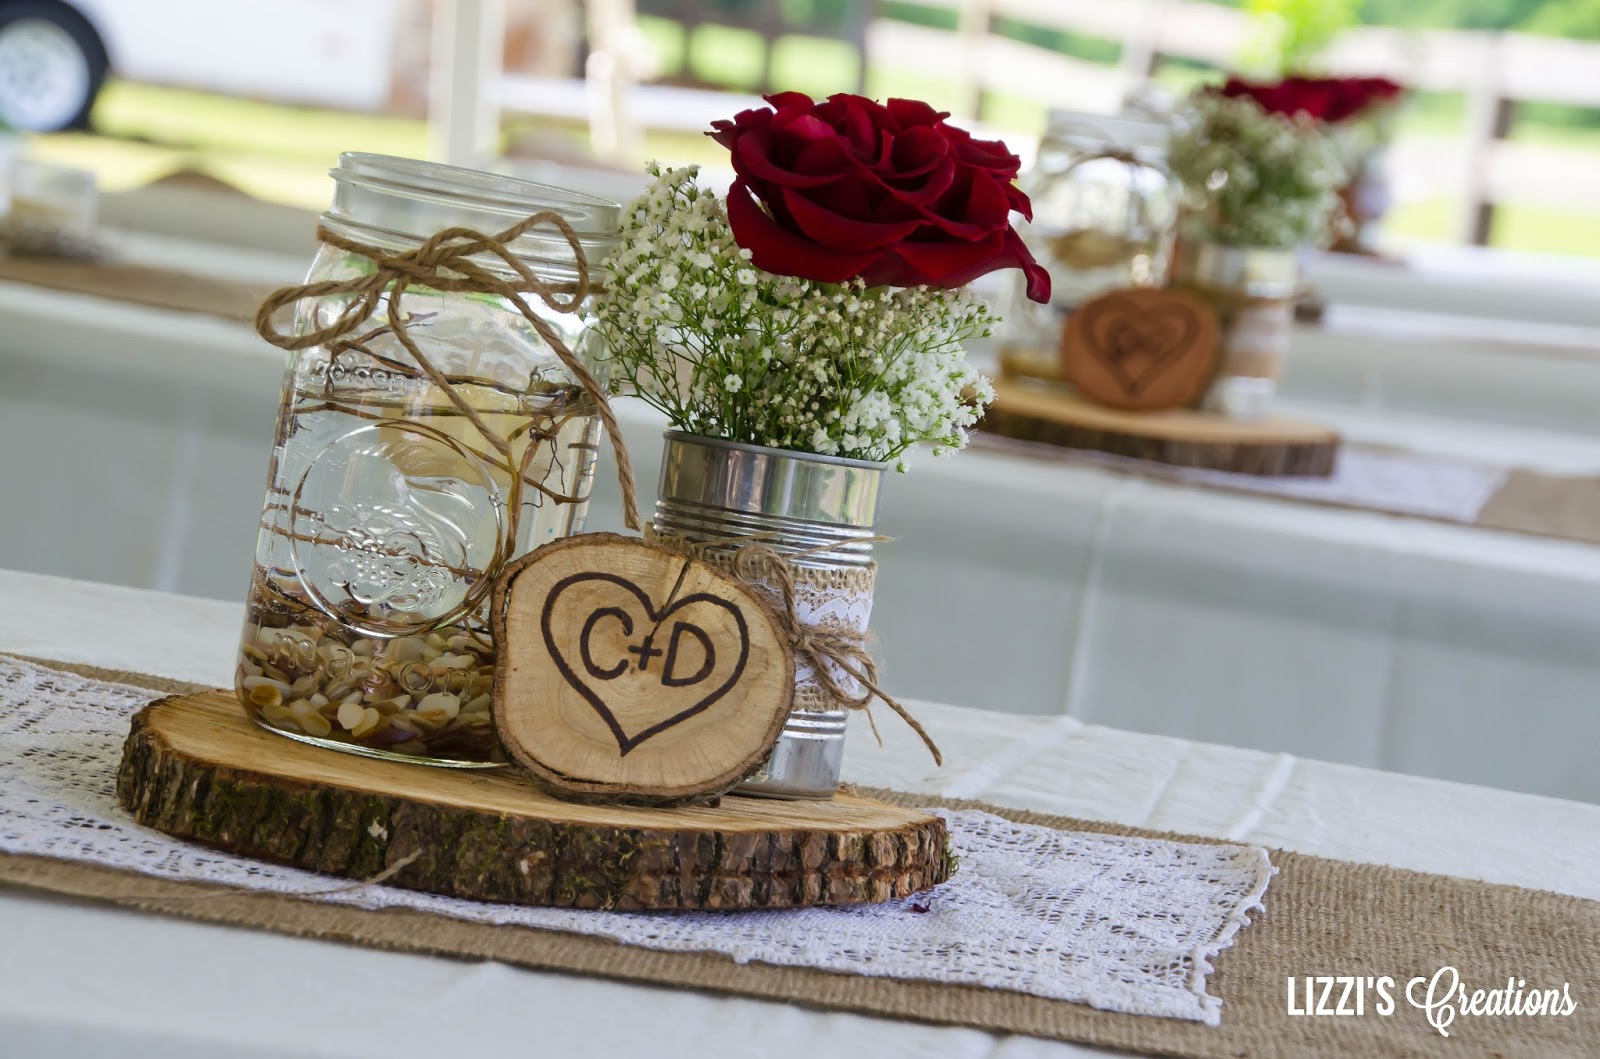 Lizzis Creations Project Wedding The Decor